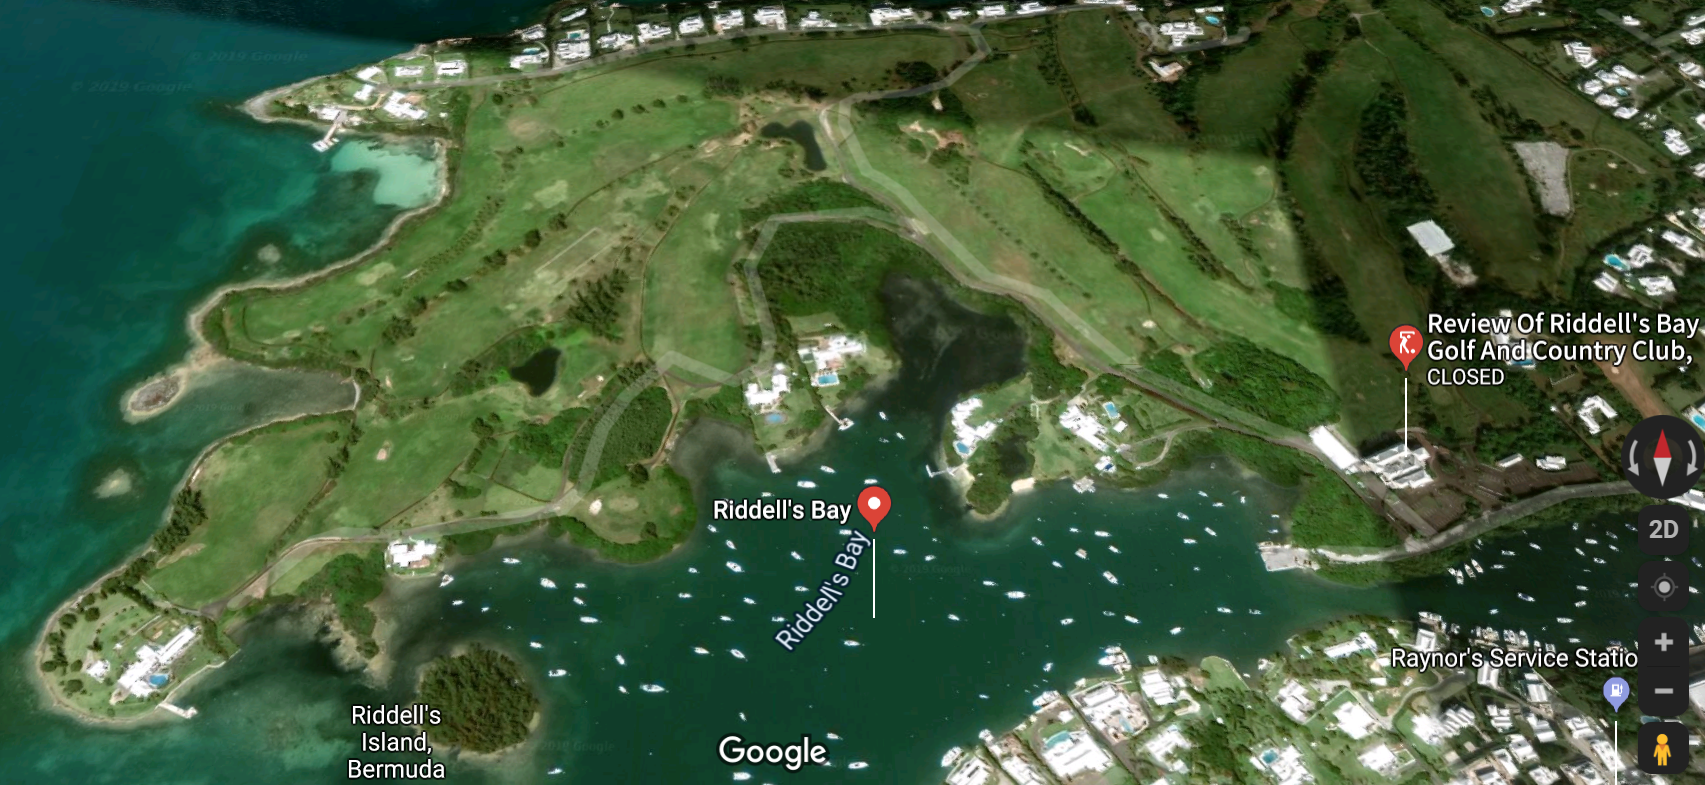 "Change.org #Petition ""PRESERVE #BERMUDA RECREATIONAL LAND"" – [Ex. Riddell's Bay Golf & Country Club]"